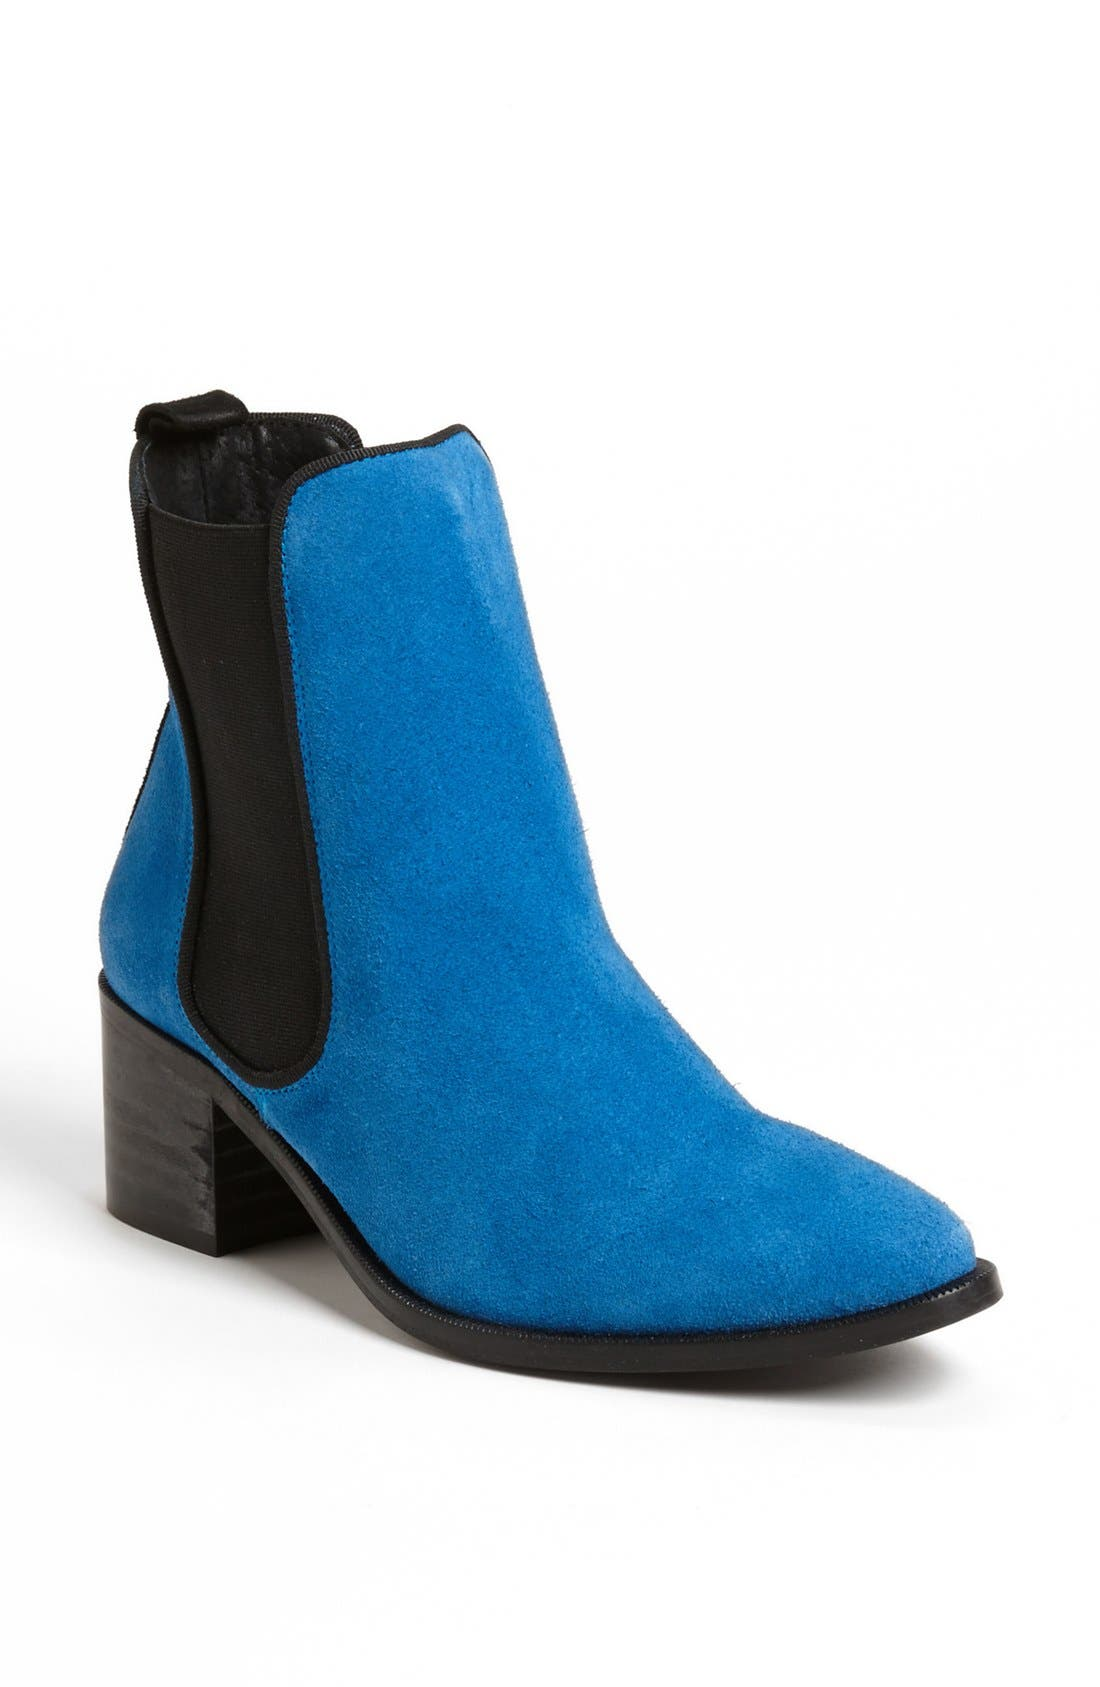 Alternate Image 1 Selected - KG Kurt Geiger 'Sonic' Suede Boot